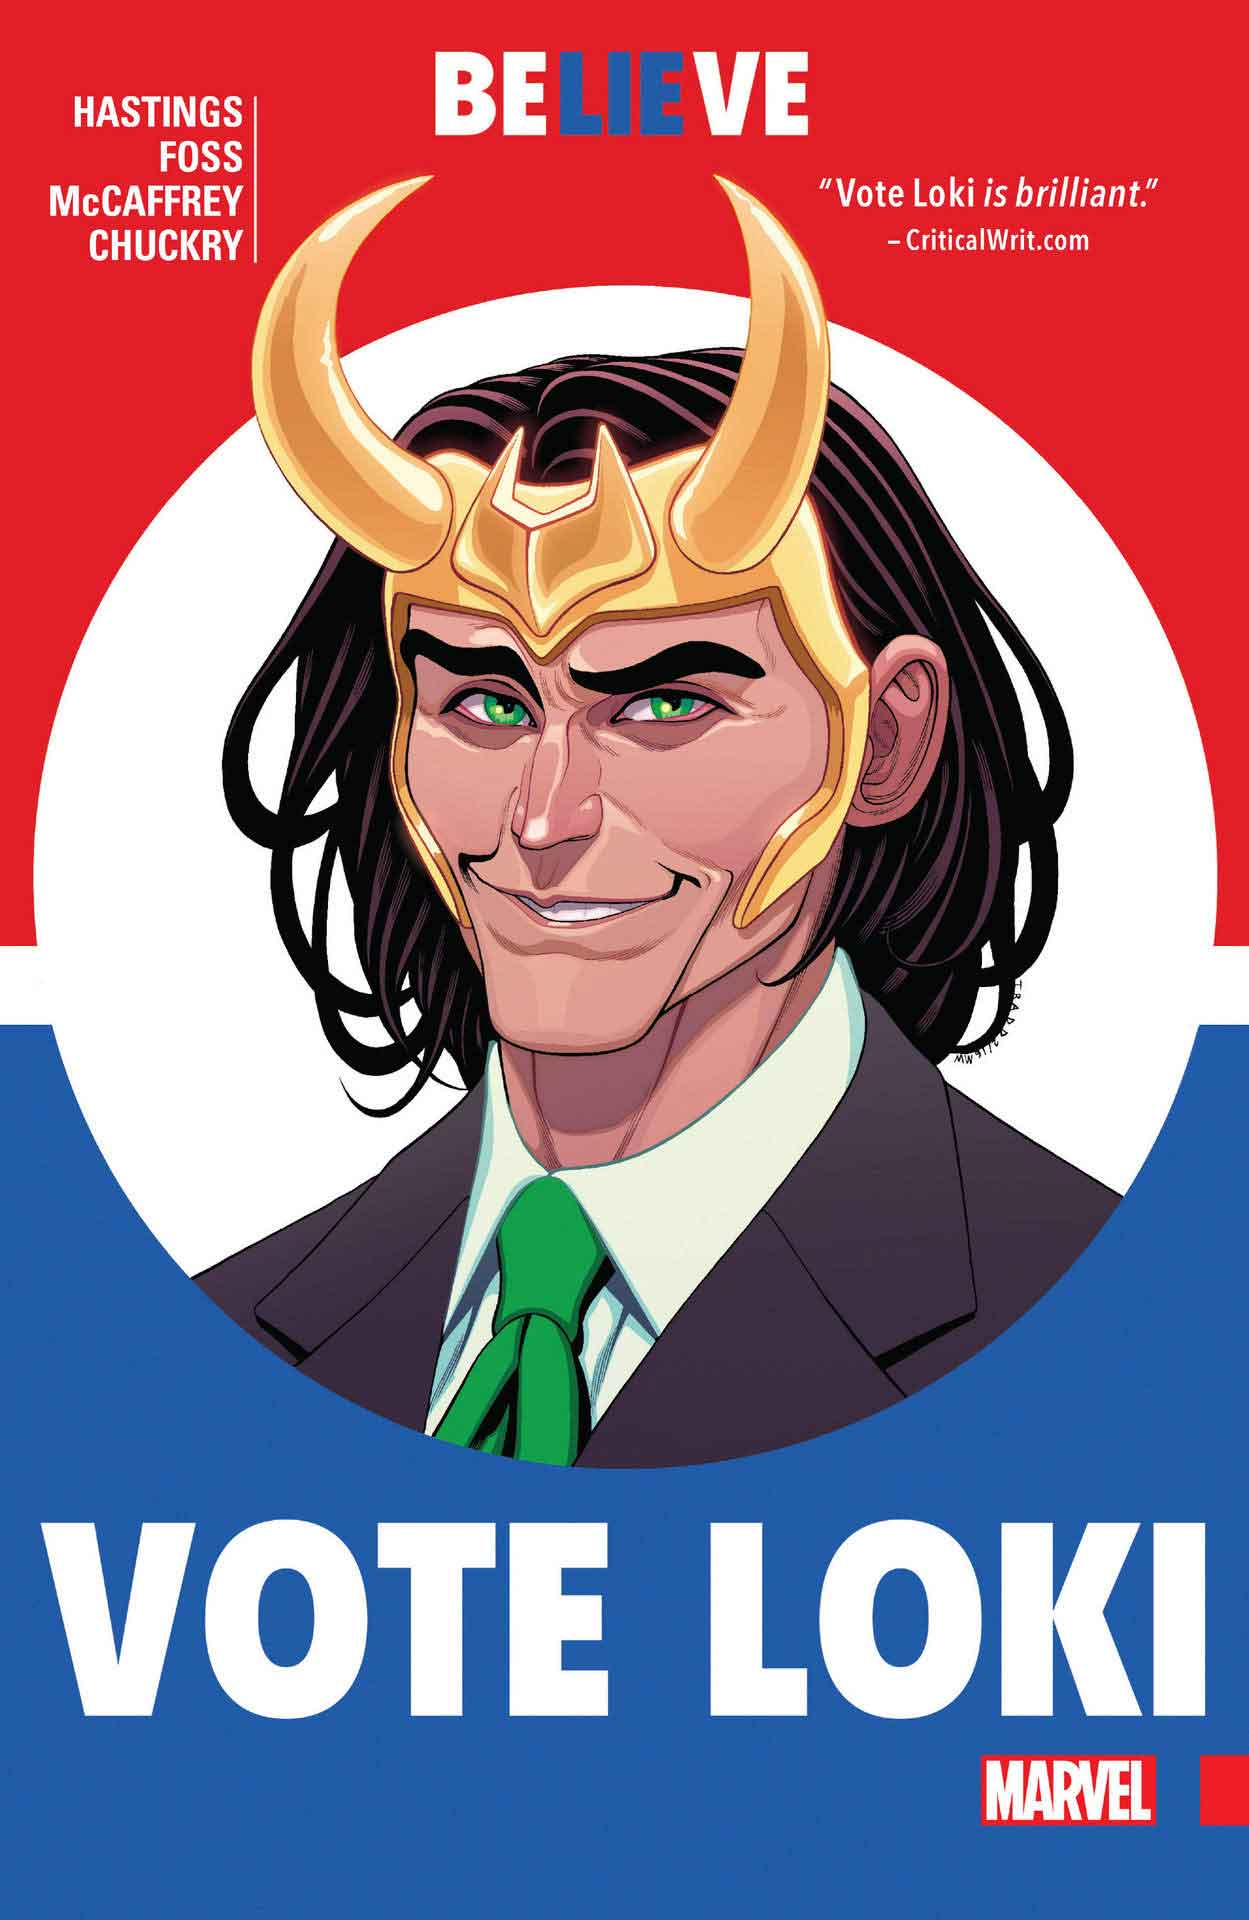 Vota Loki di Christopher Hastings e Israel Salva